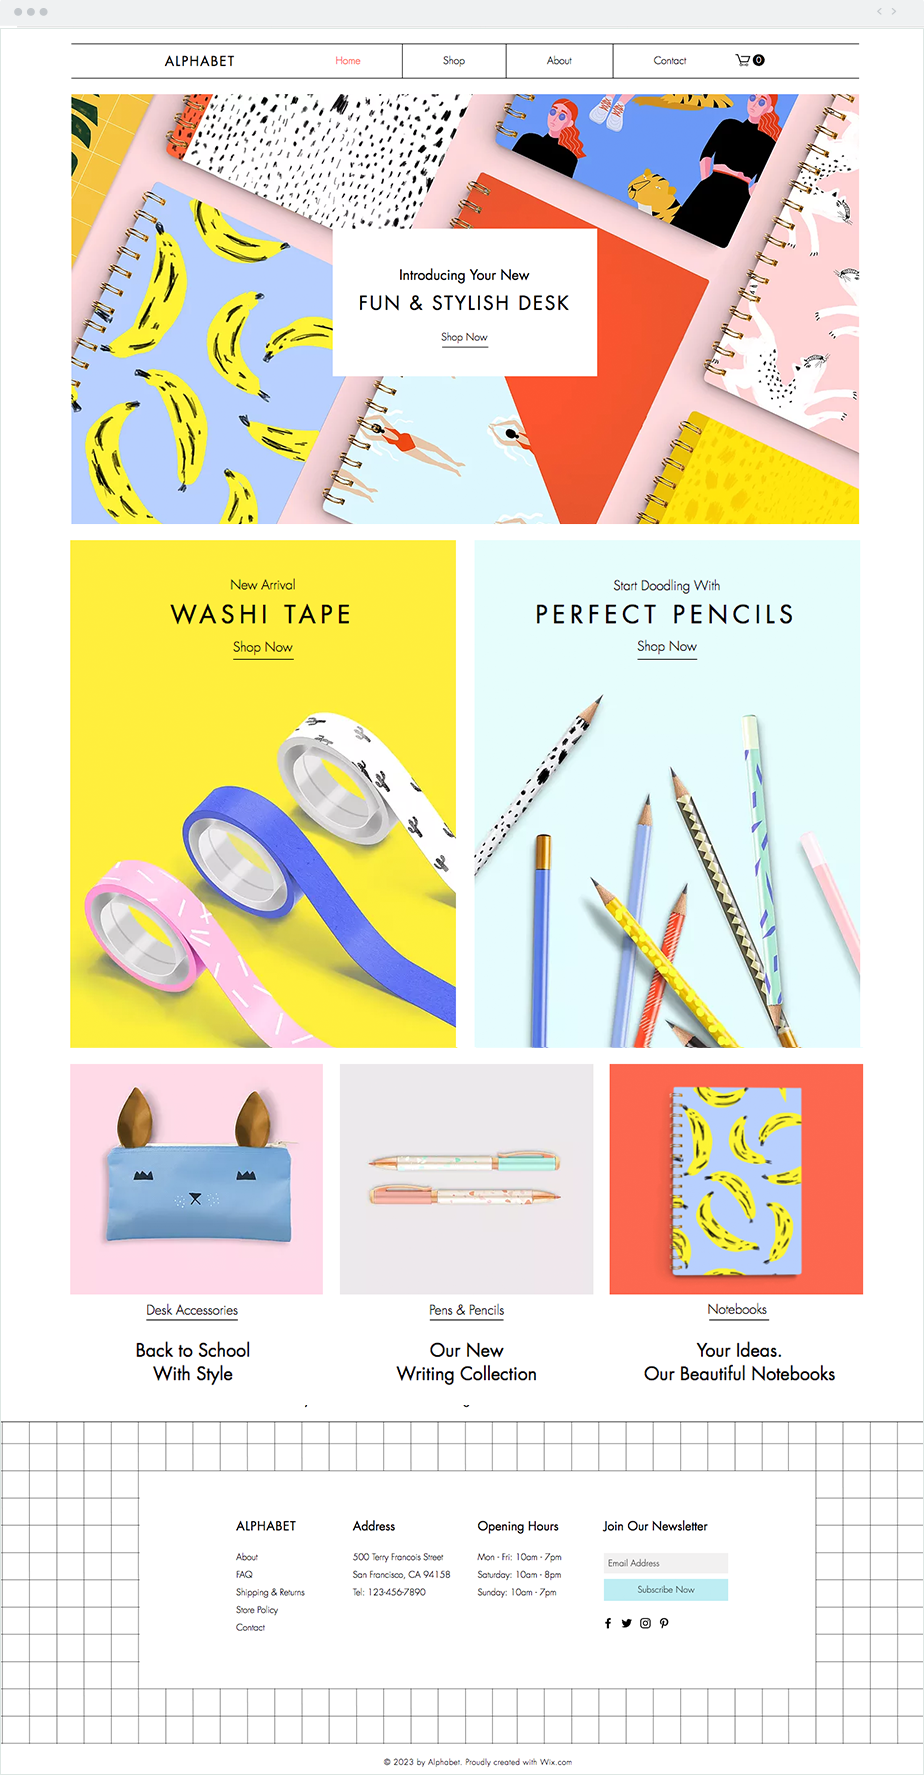 Stationery Online Store Website Template Online Store Design Portfolio Website Design Wix Templates